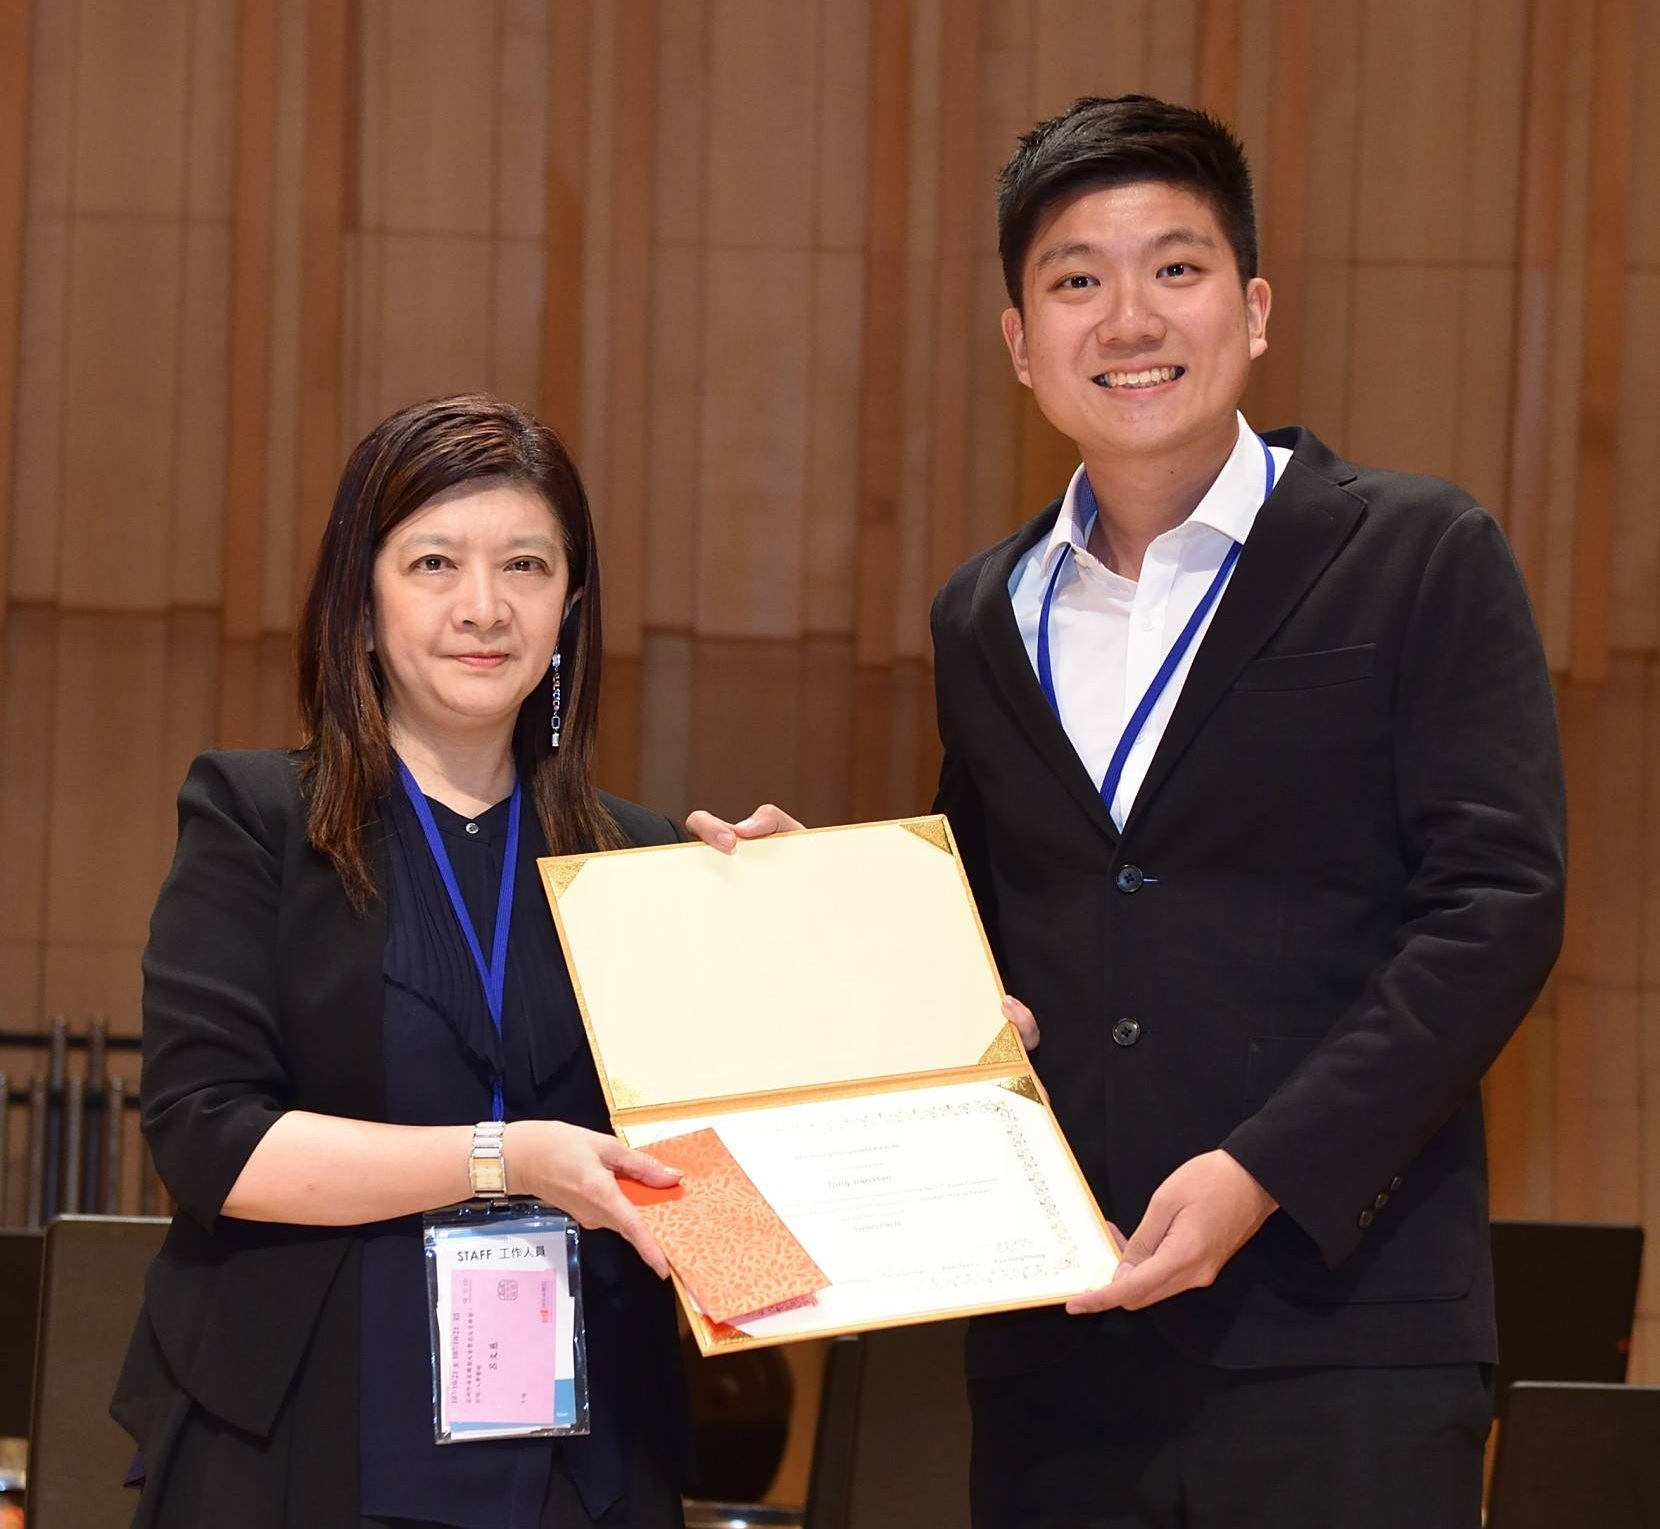 Jian Han receiving 3rd Prize at the 2018 Asian Composers League Young Composers Competition.